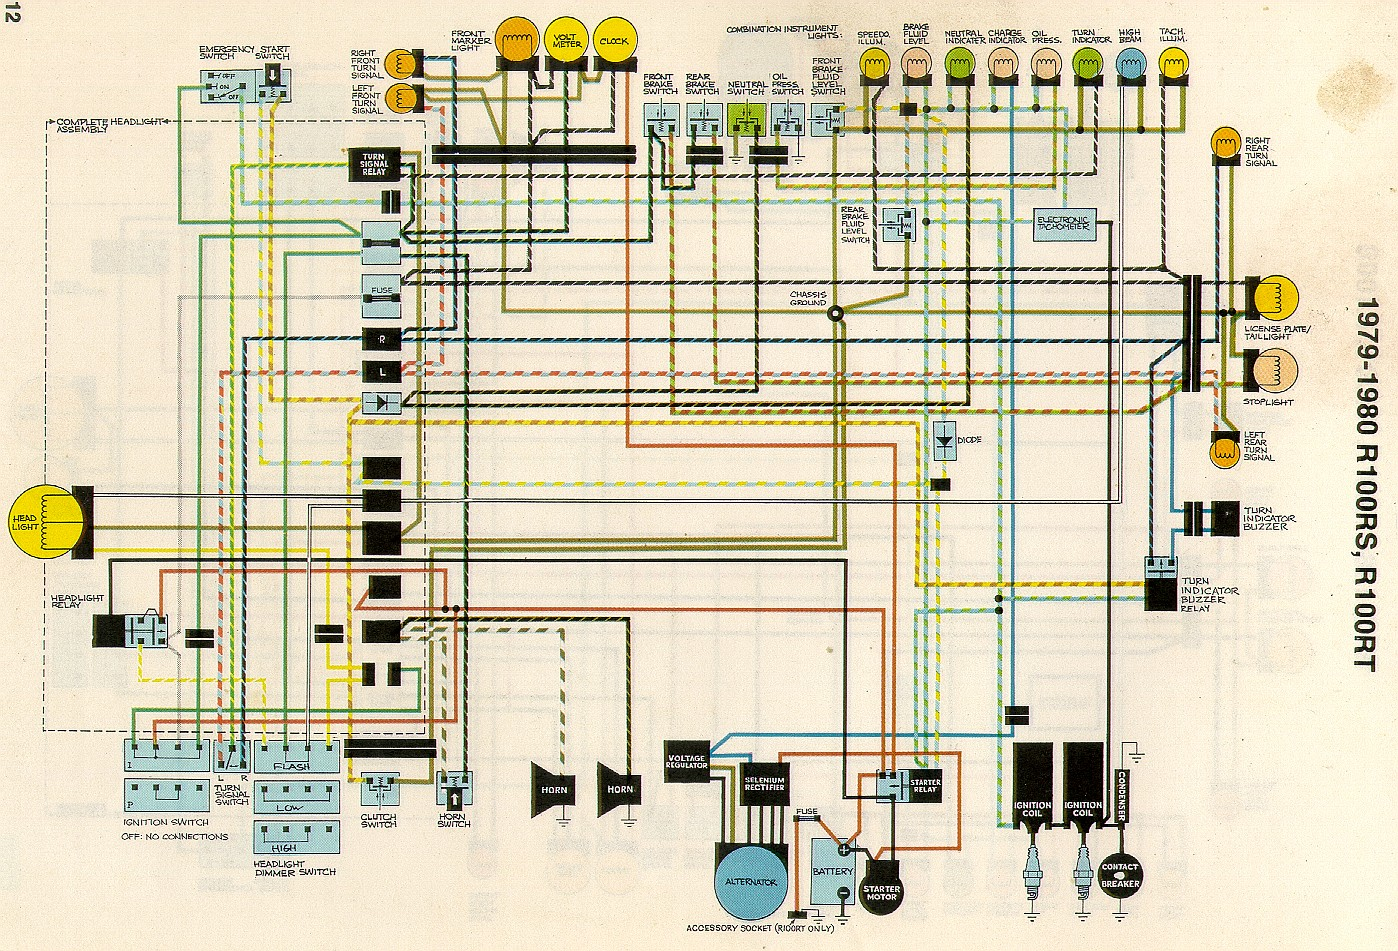 79rs 5 united articles wiring diagrams bmw r75/5 wiring diagram at gsmx.co